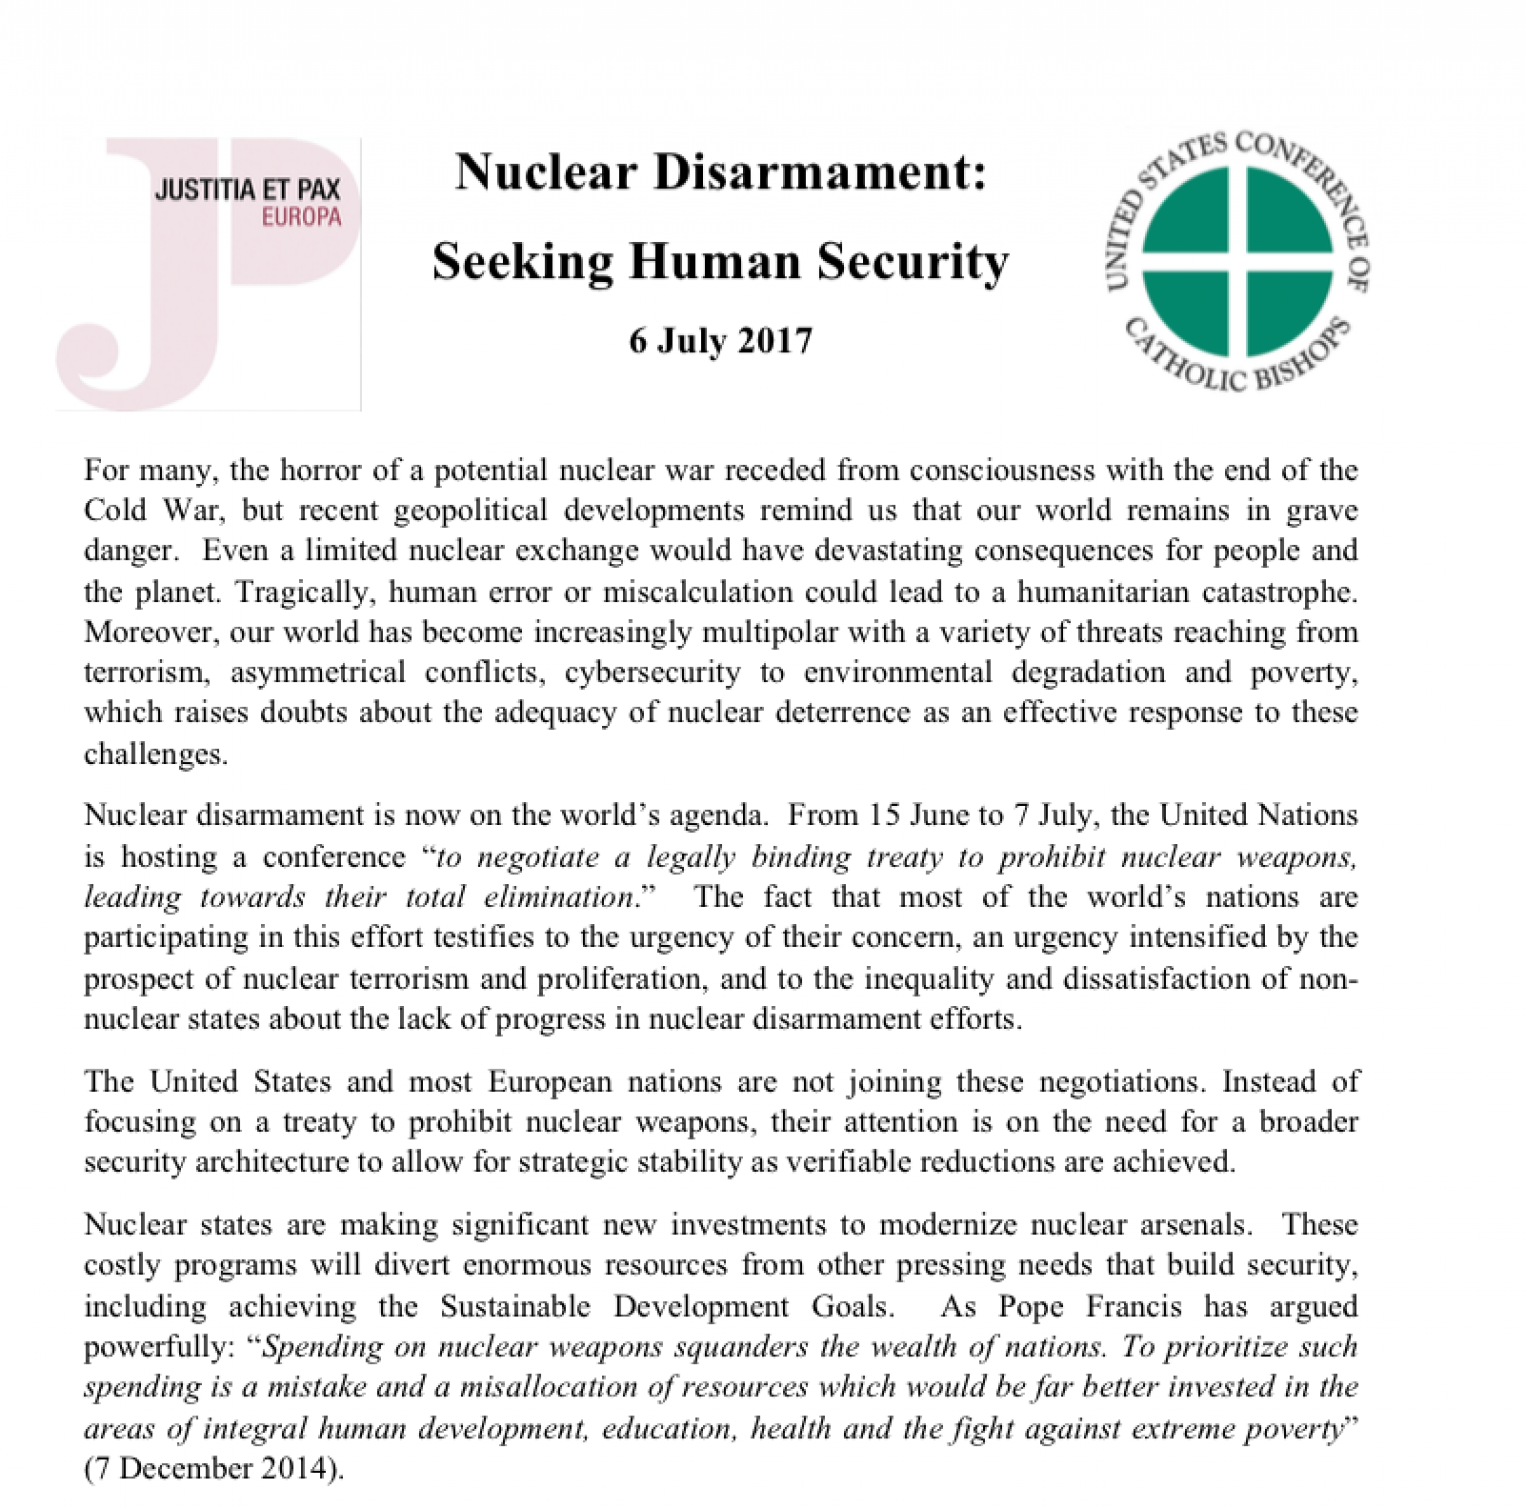 Nuclear Disarmament: Seeking Human Security